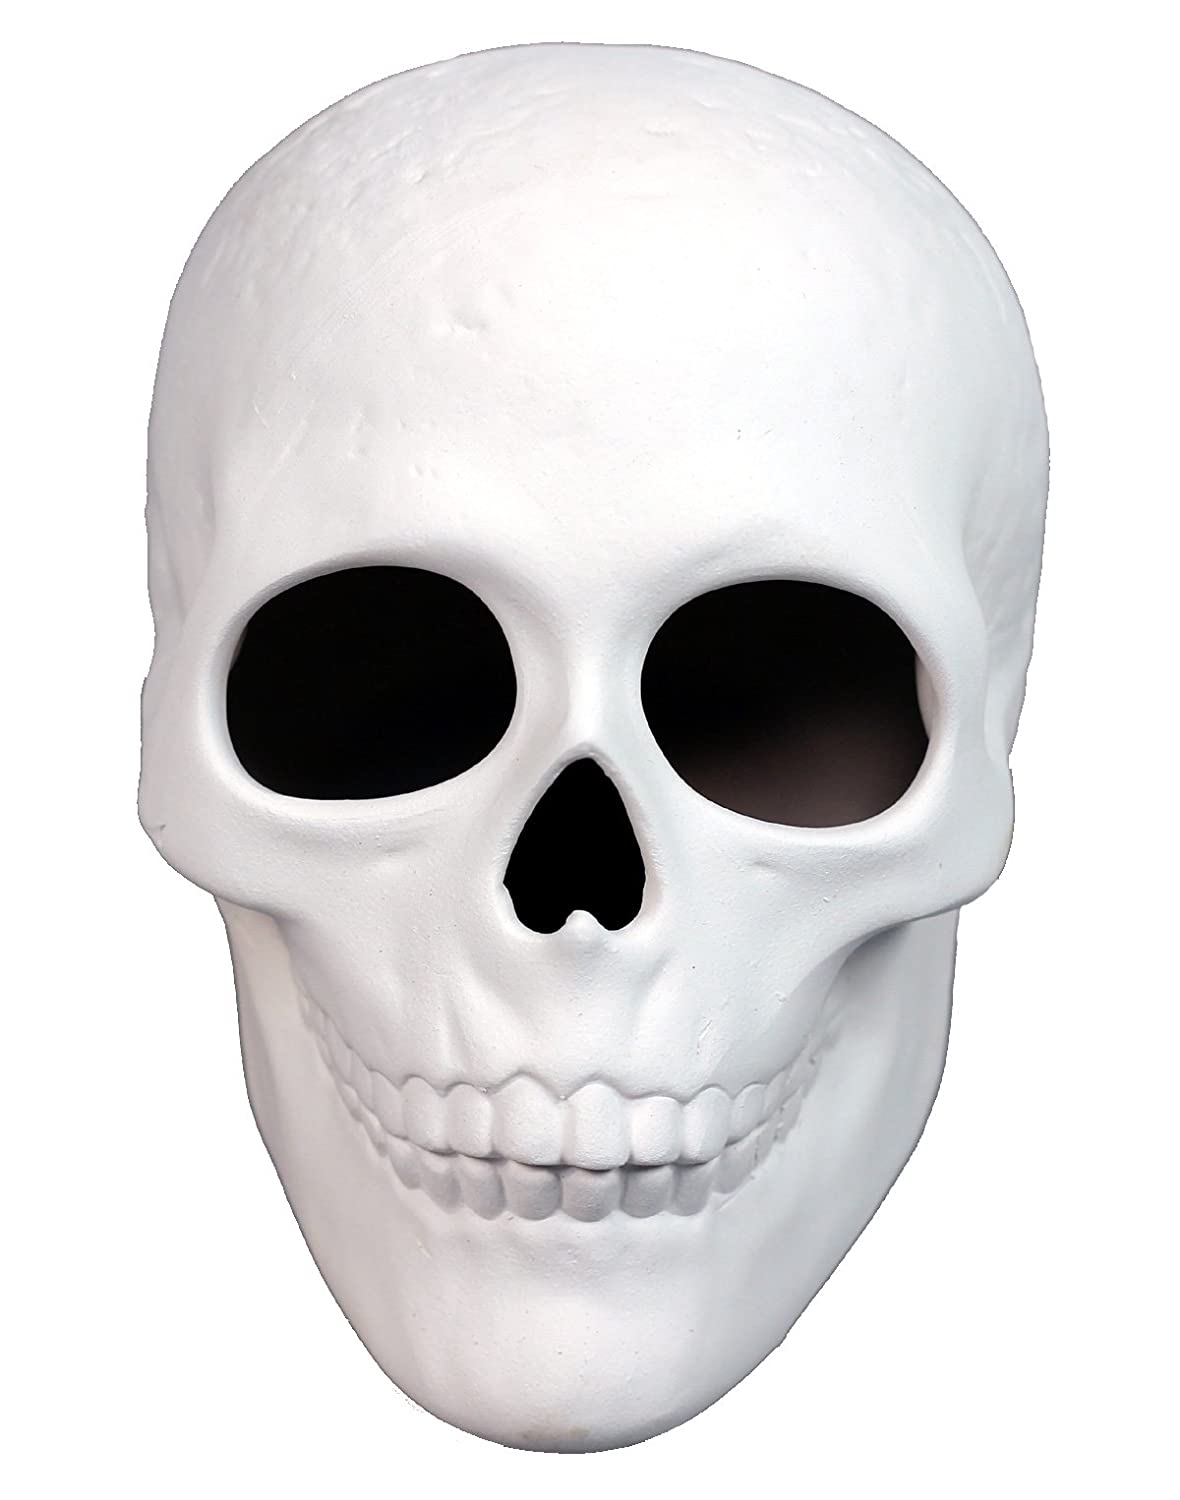 Ready To Paint Ceramic Bisque, 5 Inch Long x 4 Inch Tall Skull, Includes How To Paint Your Own Pottery Booklet Creative Hobbies